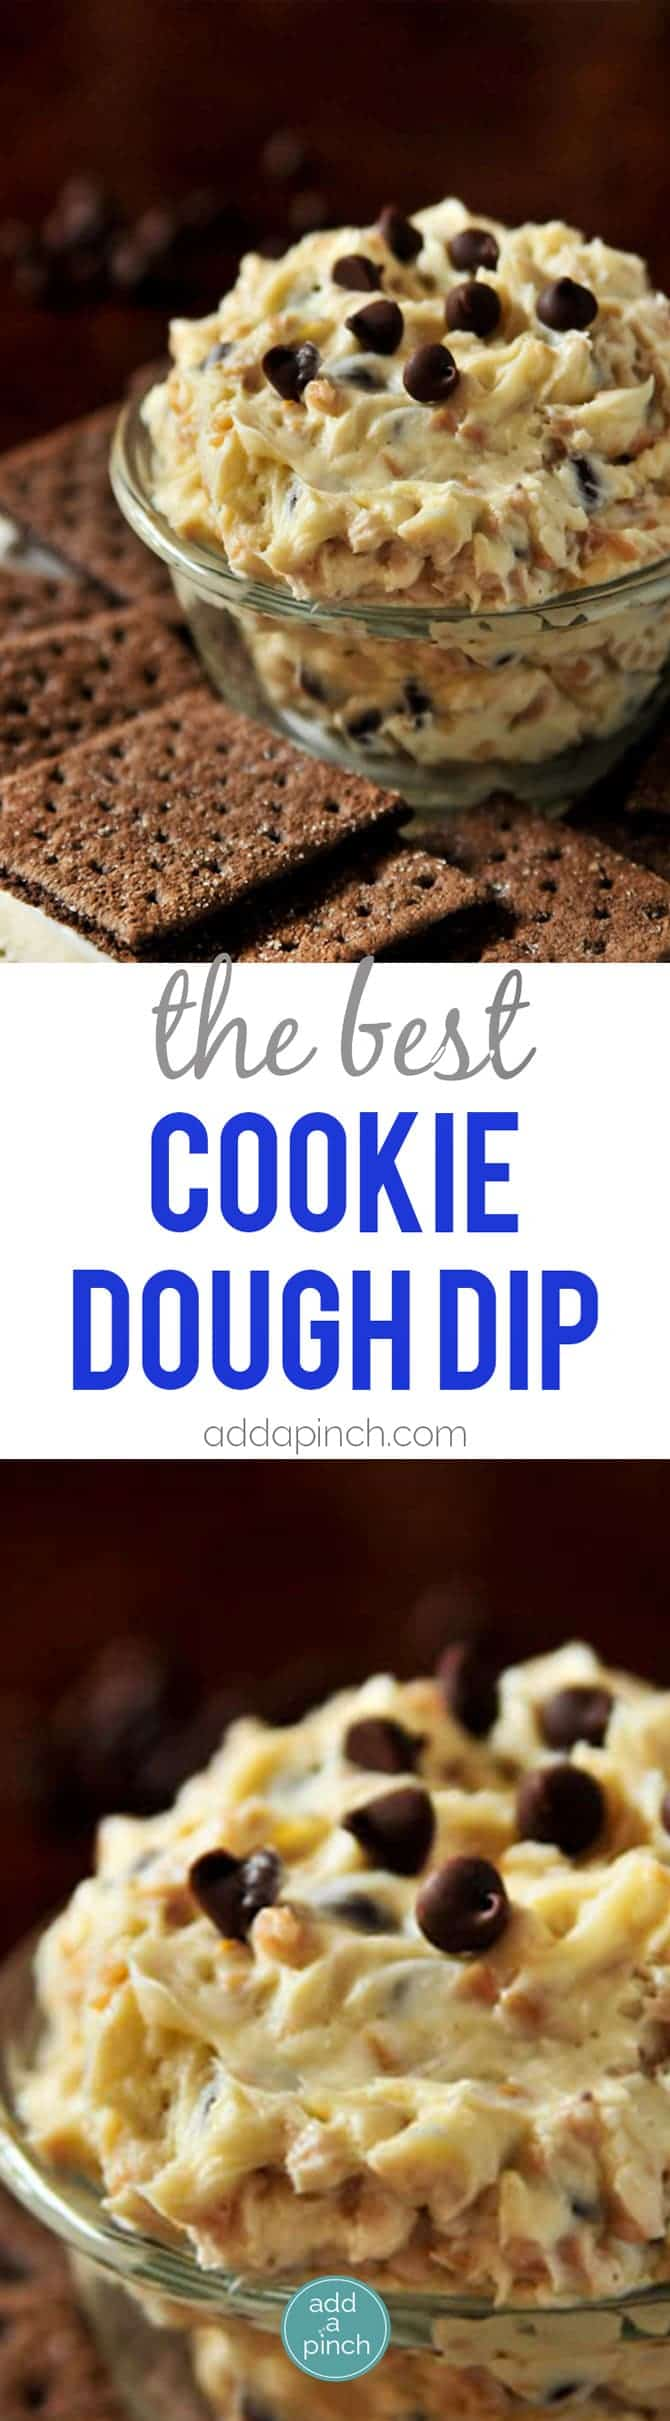 The BEST Cookie Dough Dip Recipe - Seriously the BEST Cookie Dough Dip Recipe that I've ever tasted! So quick and easy and always a favorite when you serve it! This creamy dip tastes just like cookie dough in dip form! Made with cream cheese, chocolate chips, and a secret ingredient that takes it over the top! Everyone will ask for the recipe! Serve with graham crackers, pretzels or fruit! // addapinch.com